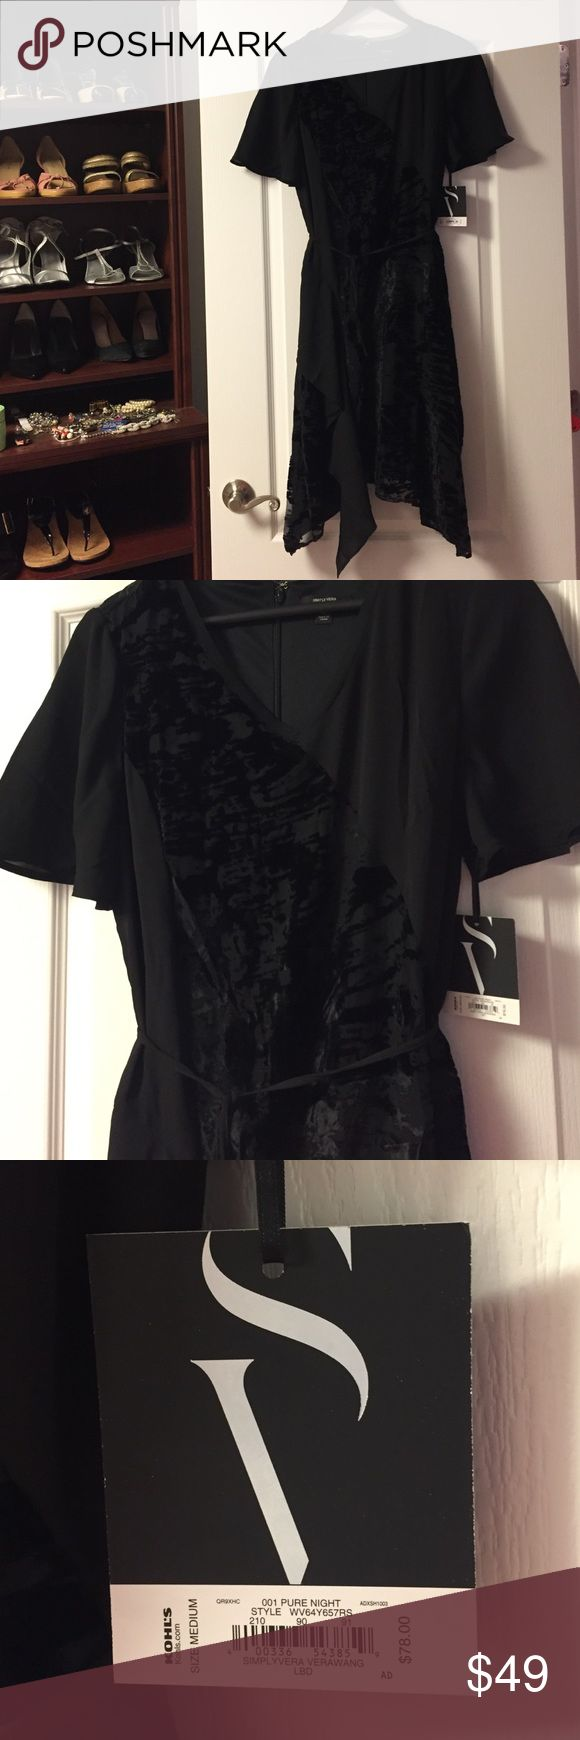 "NWT Simply Vera Vera Wang Black Dress NWT! Size Medium Black Dress. ""Simply Noir Velvet Burnout Fit & Flare Dress"" Simply Vera Vera Wang Dresses Midi"